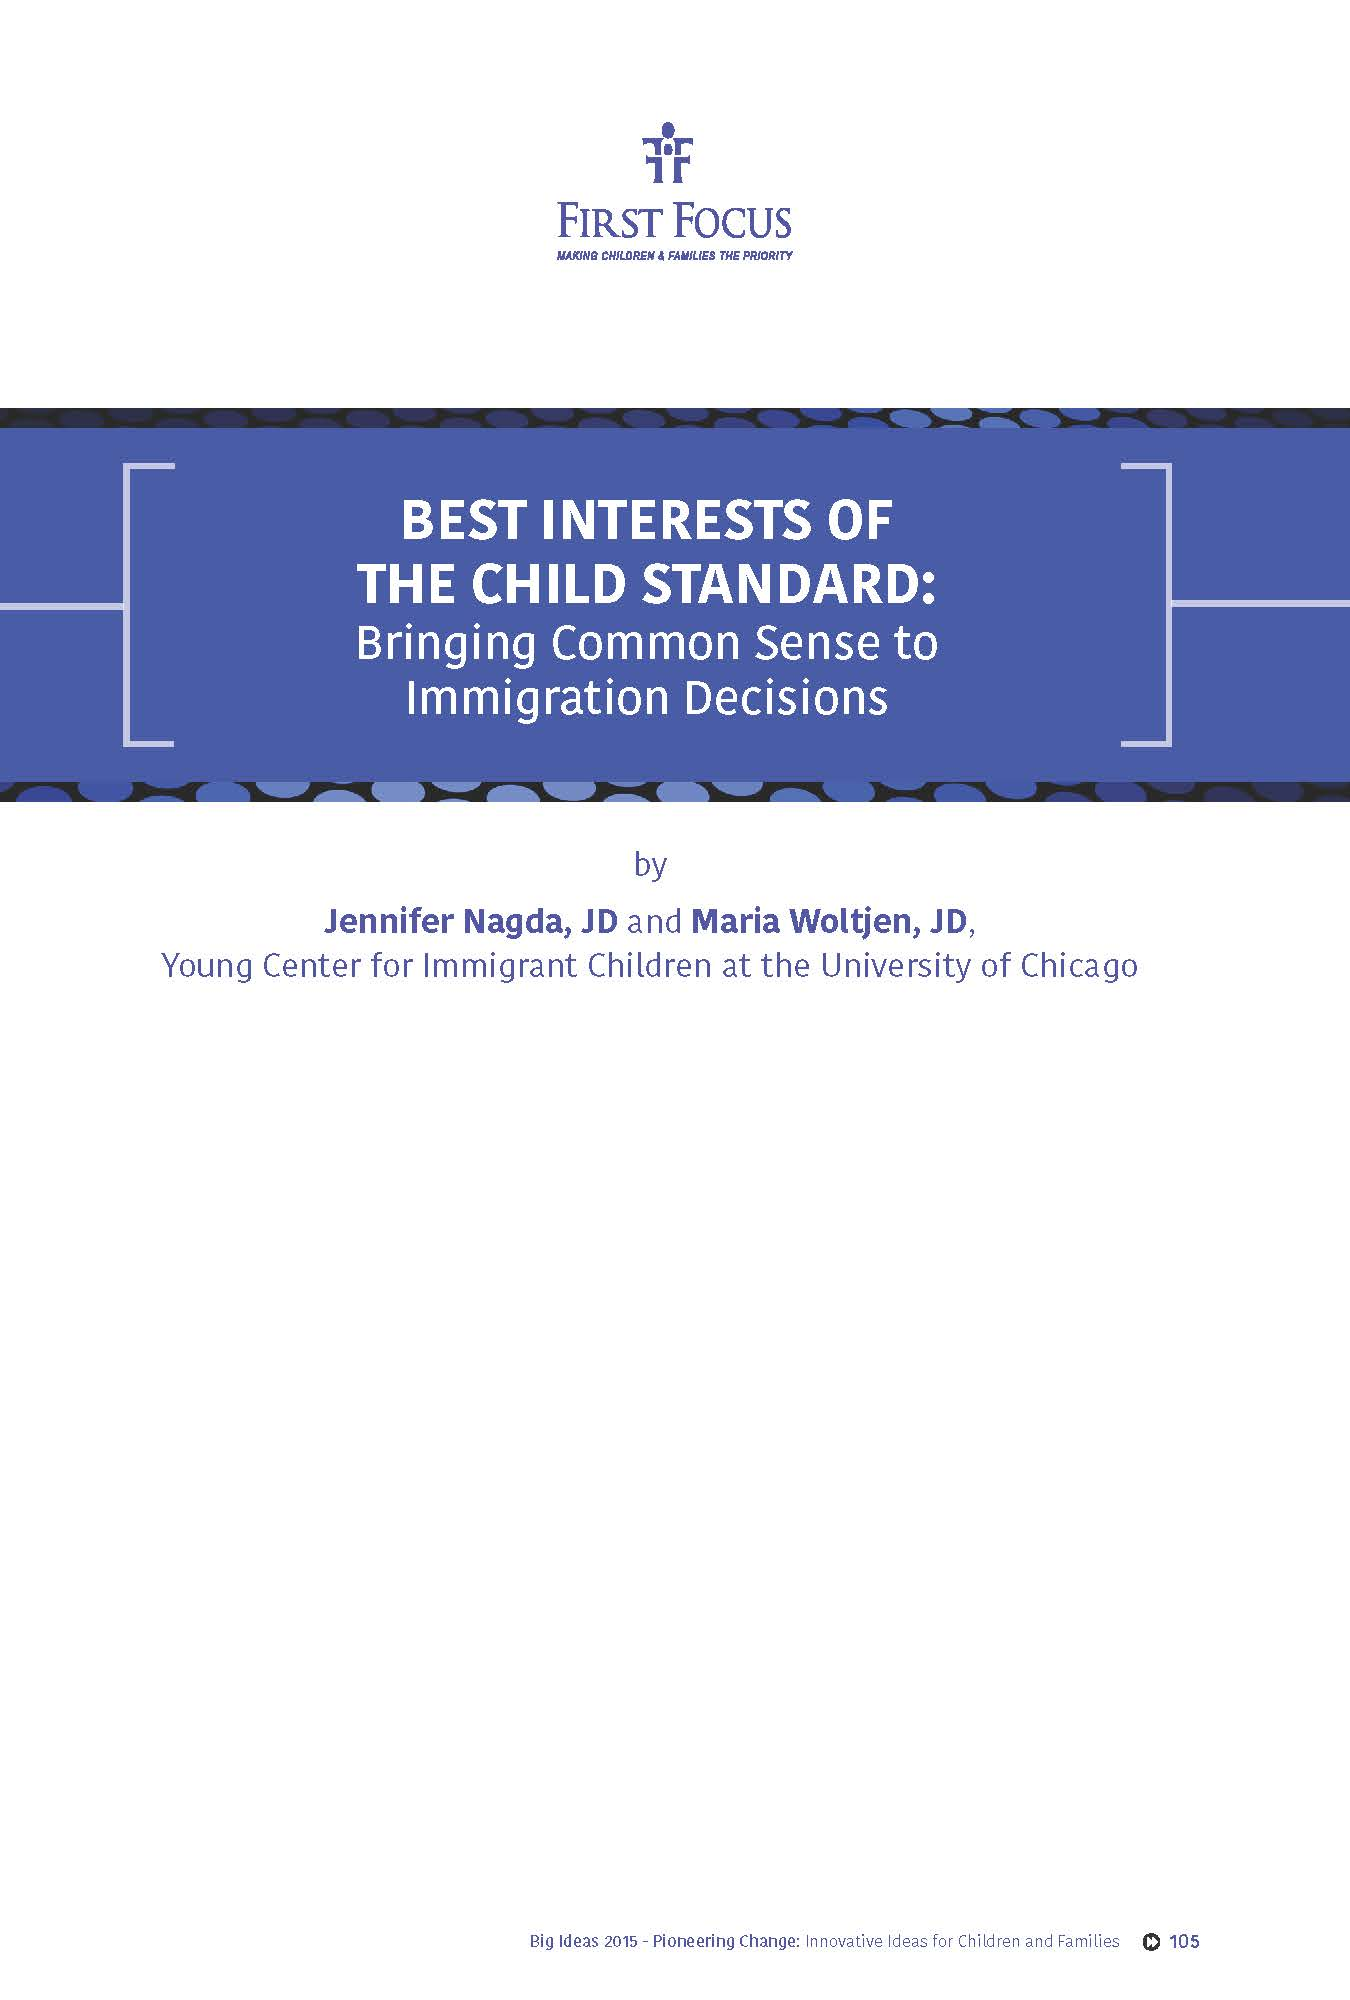 BEST INTERESTS OF THE CHILD STANDARD: Bringing Common Sense to Immigration Decisions